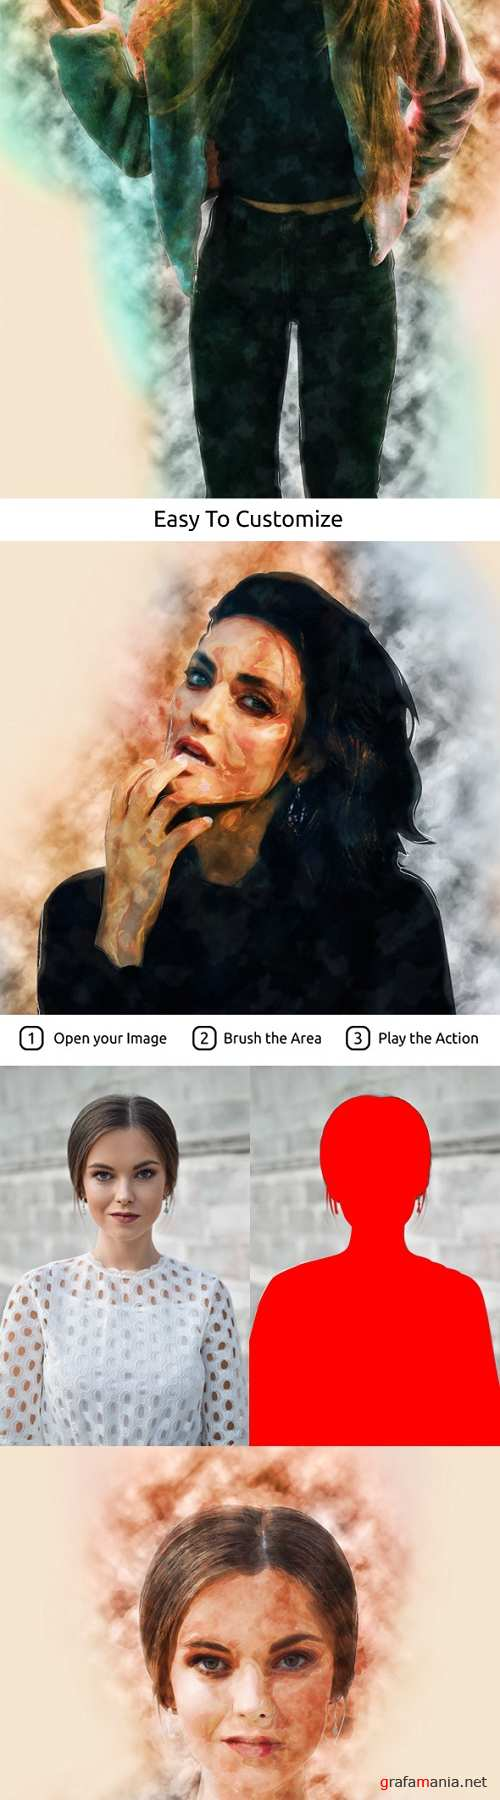 Traditinal Painting Photoshop Action 20988239